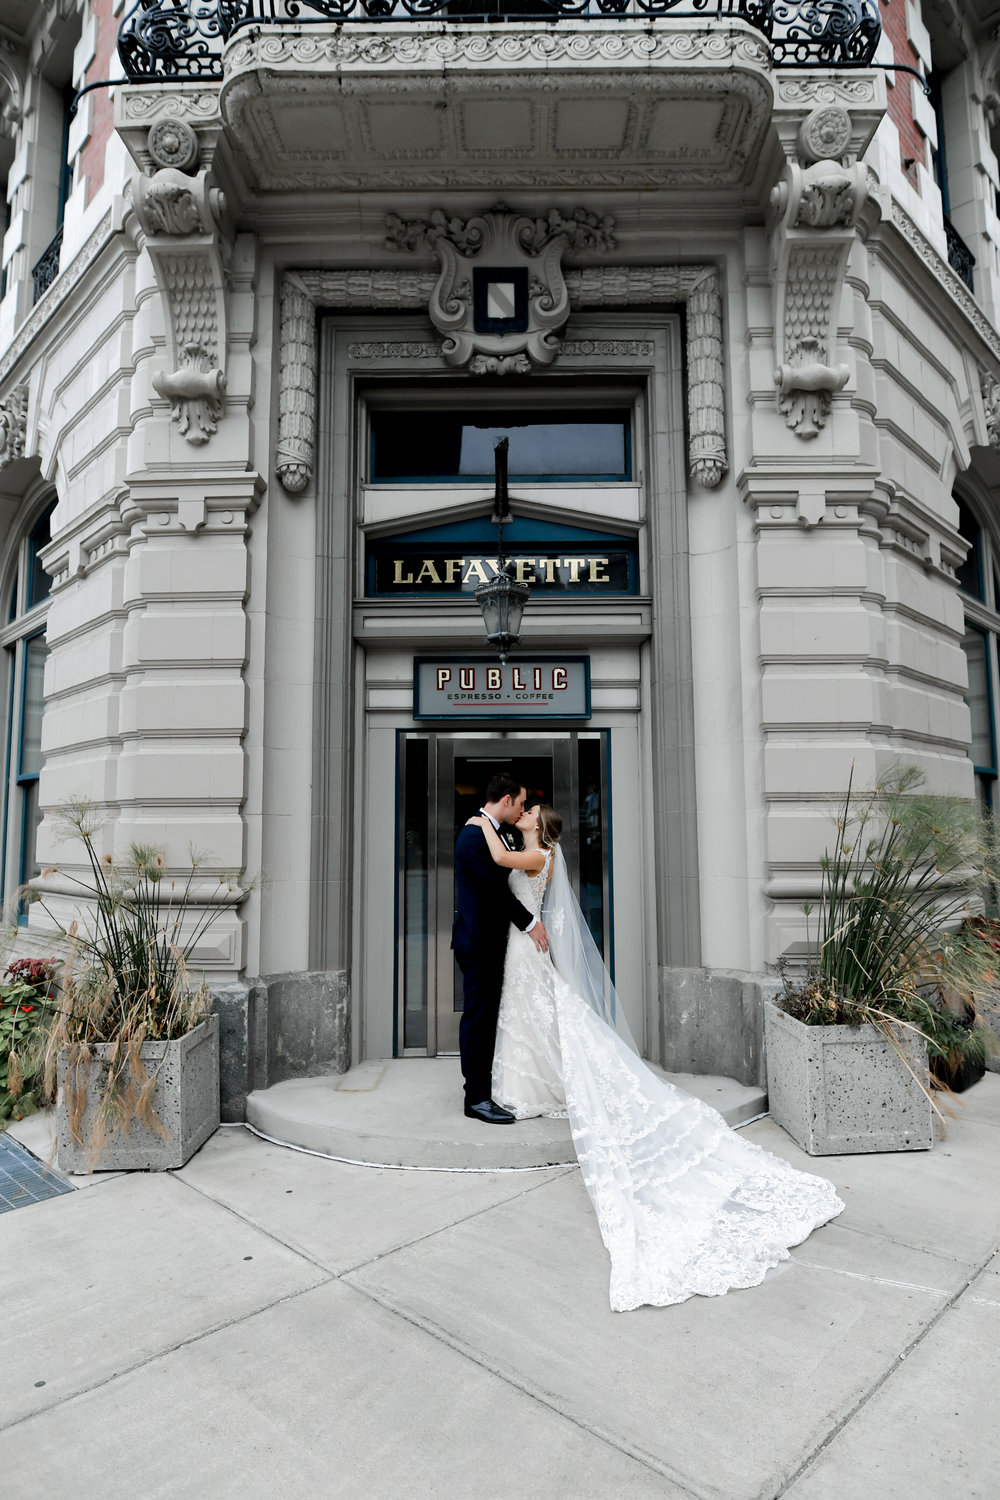 Bride and groom pose for wedding pictures outside at Buffalo, NY wedding planned by Exhale Events. Find more wedding inspiration at exhale-events.com!